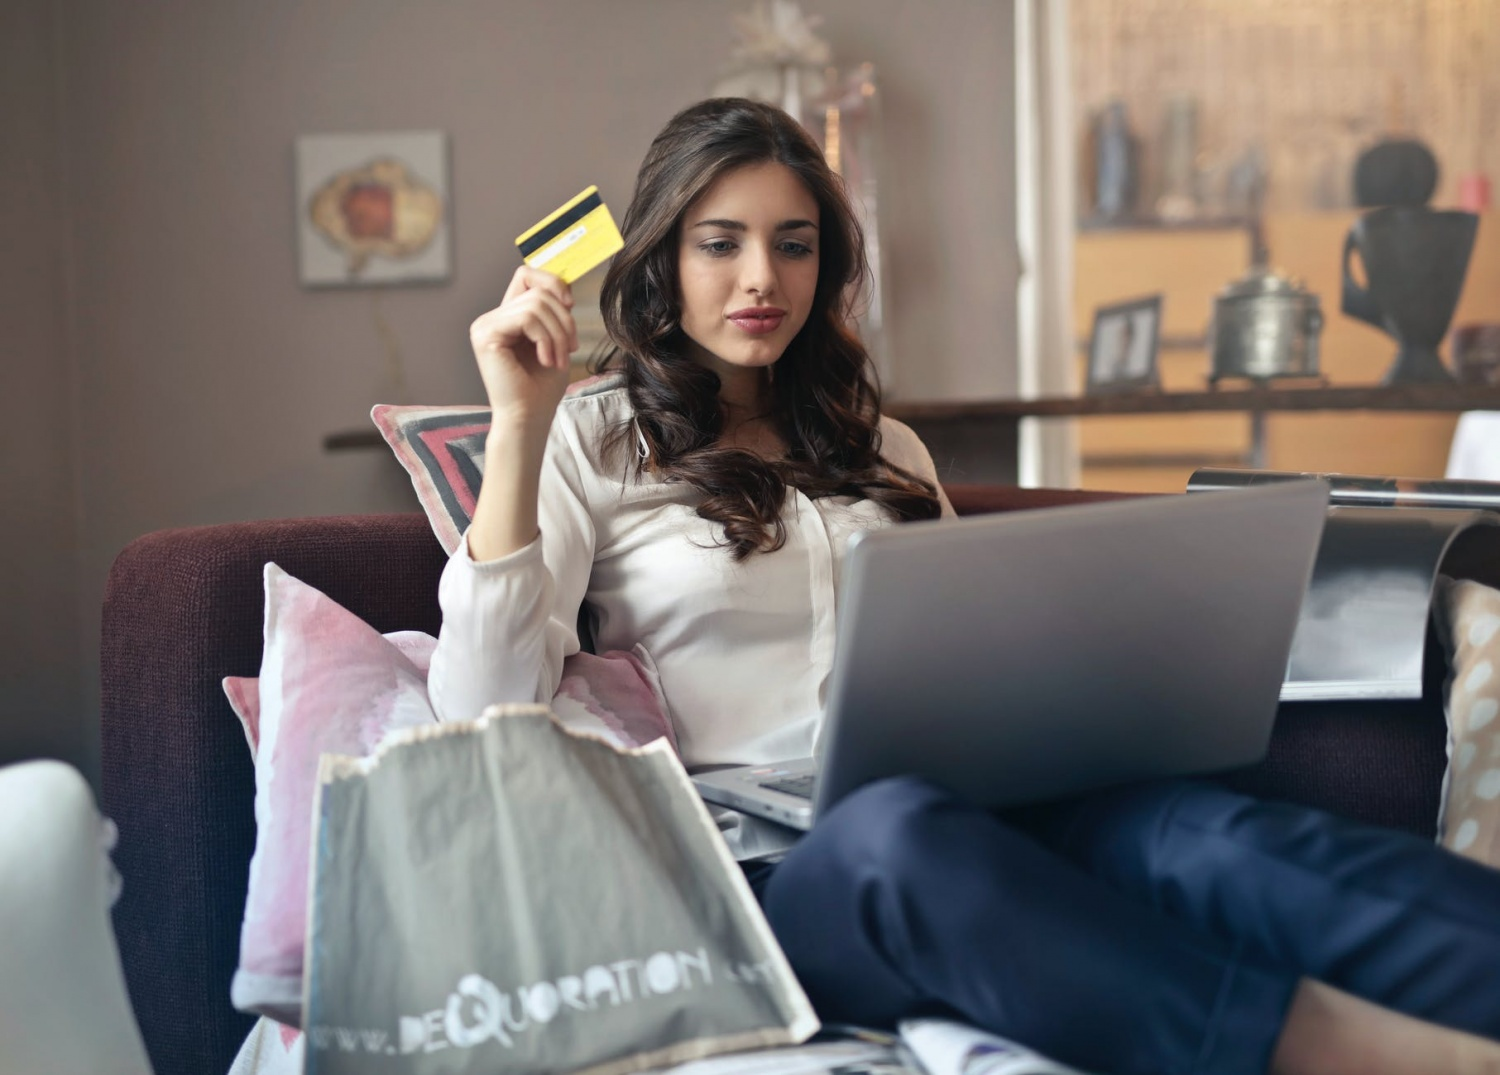 Customer Journey Innovations in eCommerce